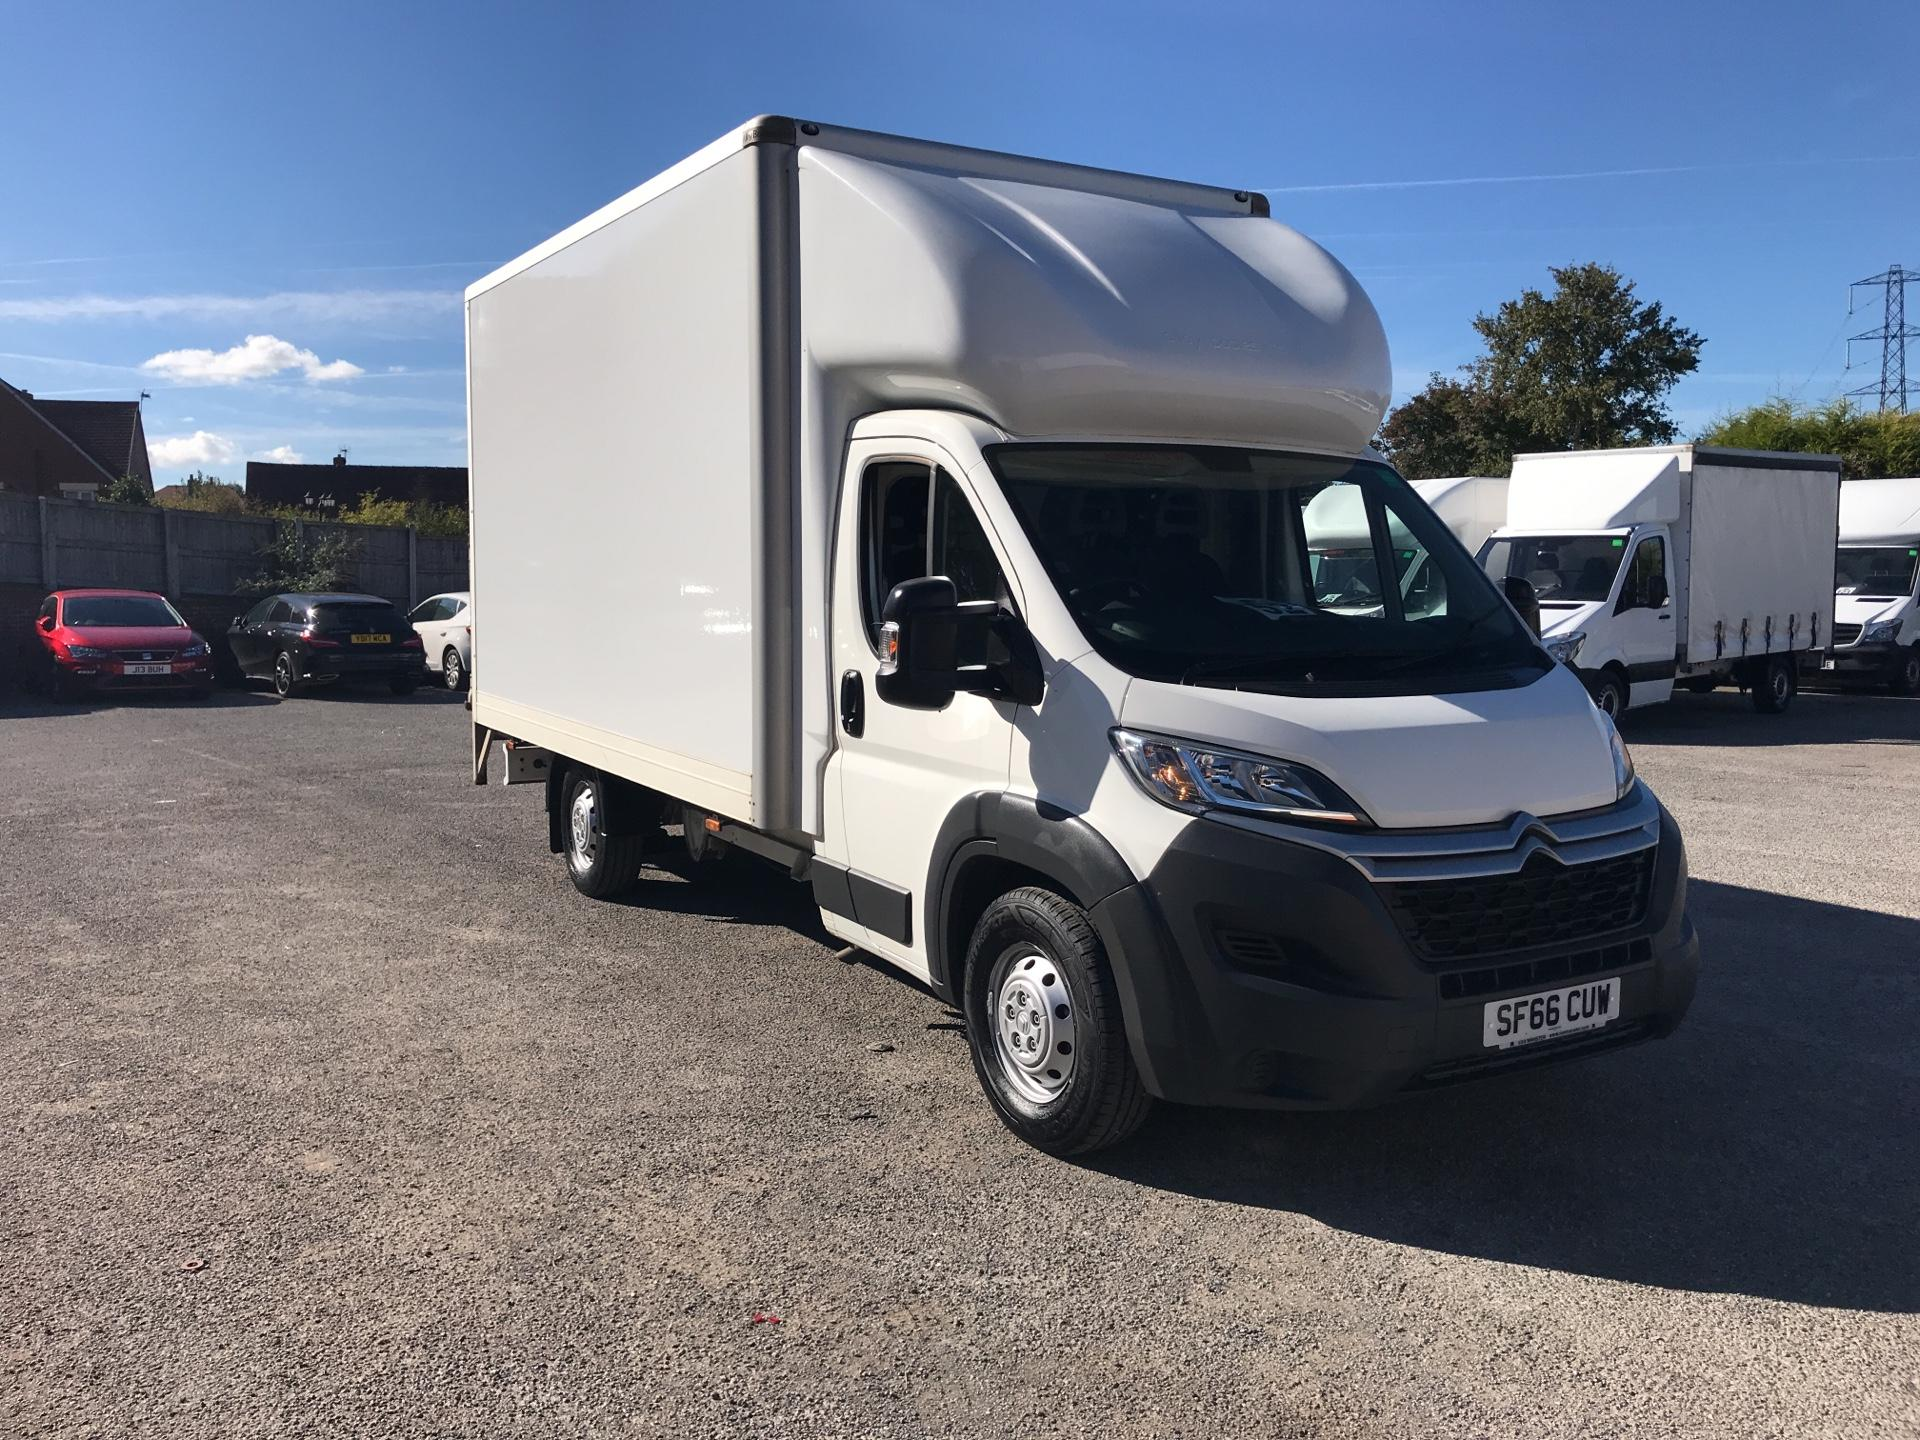 2016 Citroen Relay 2.0 Bluehdi Luton 160Ps Enterprise (SF66CUW)